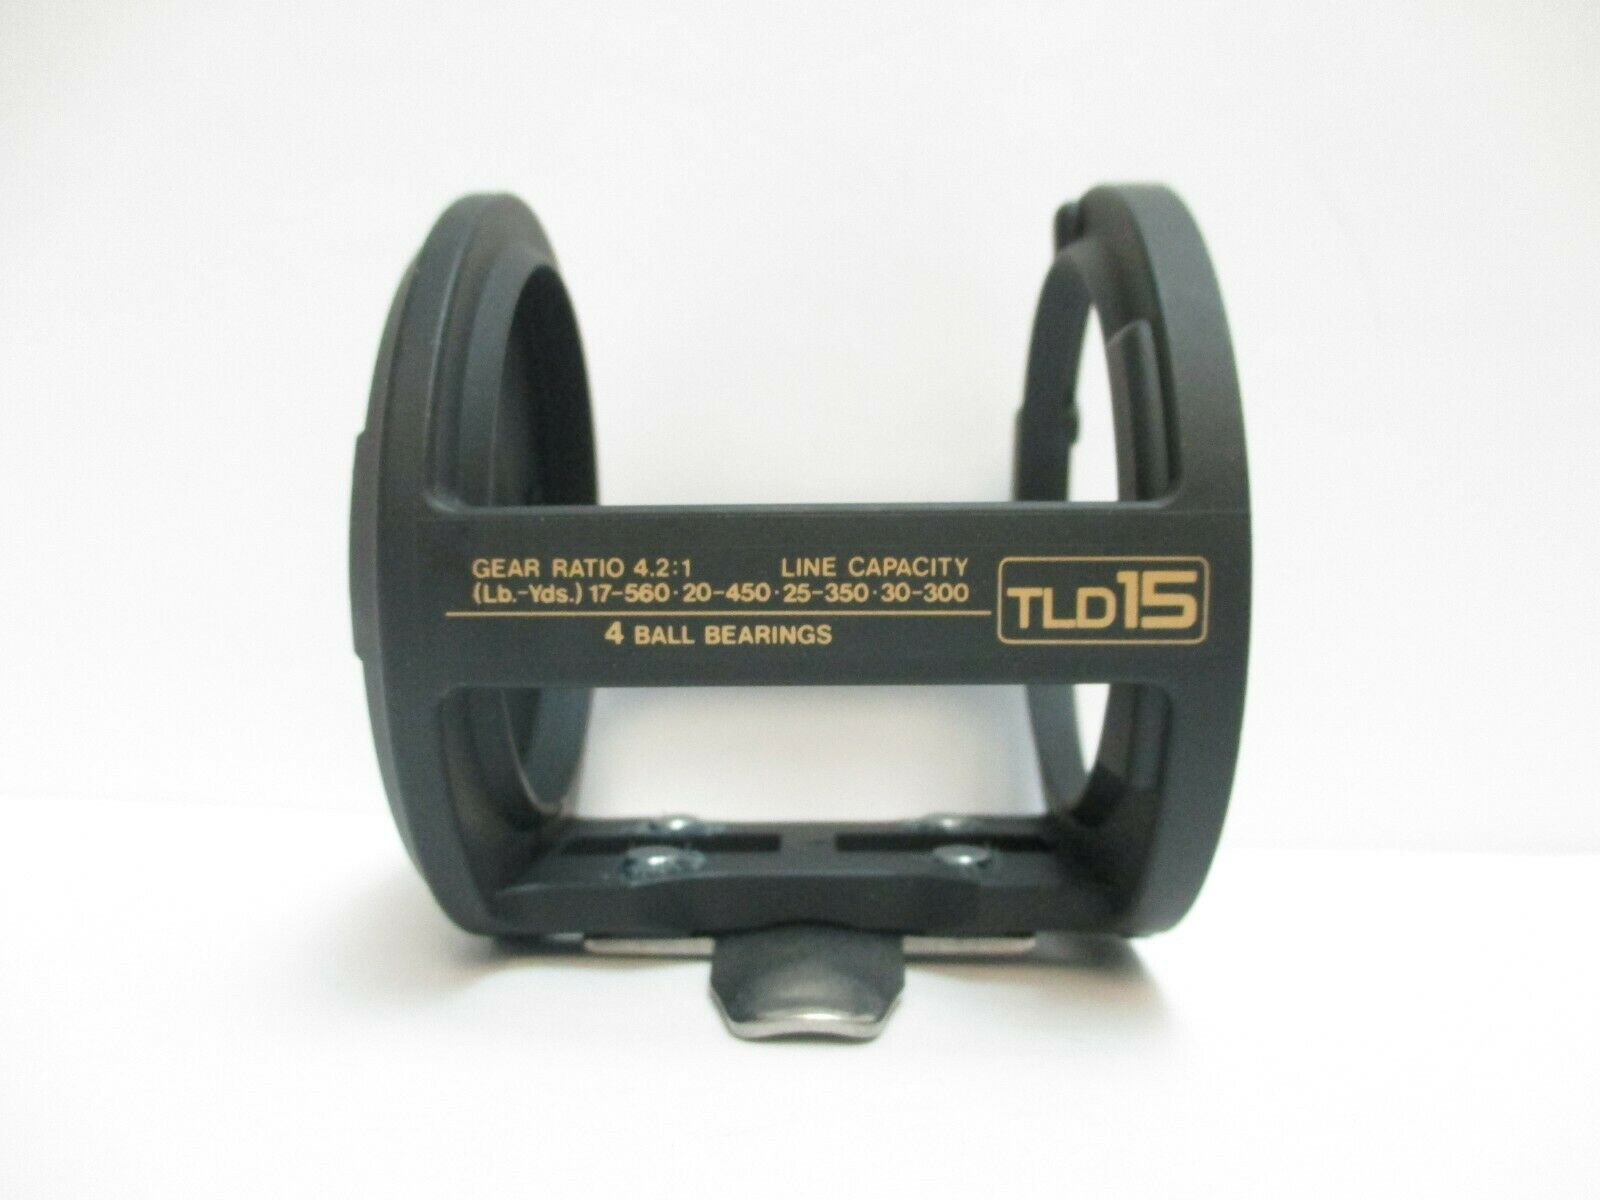 SHIMANO BIG GAME REEL PART - TLD0071 TLD 15 - One Piece Frame Body  A